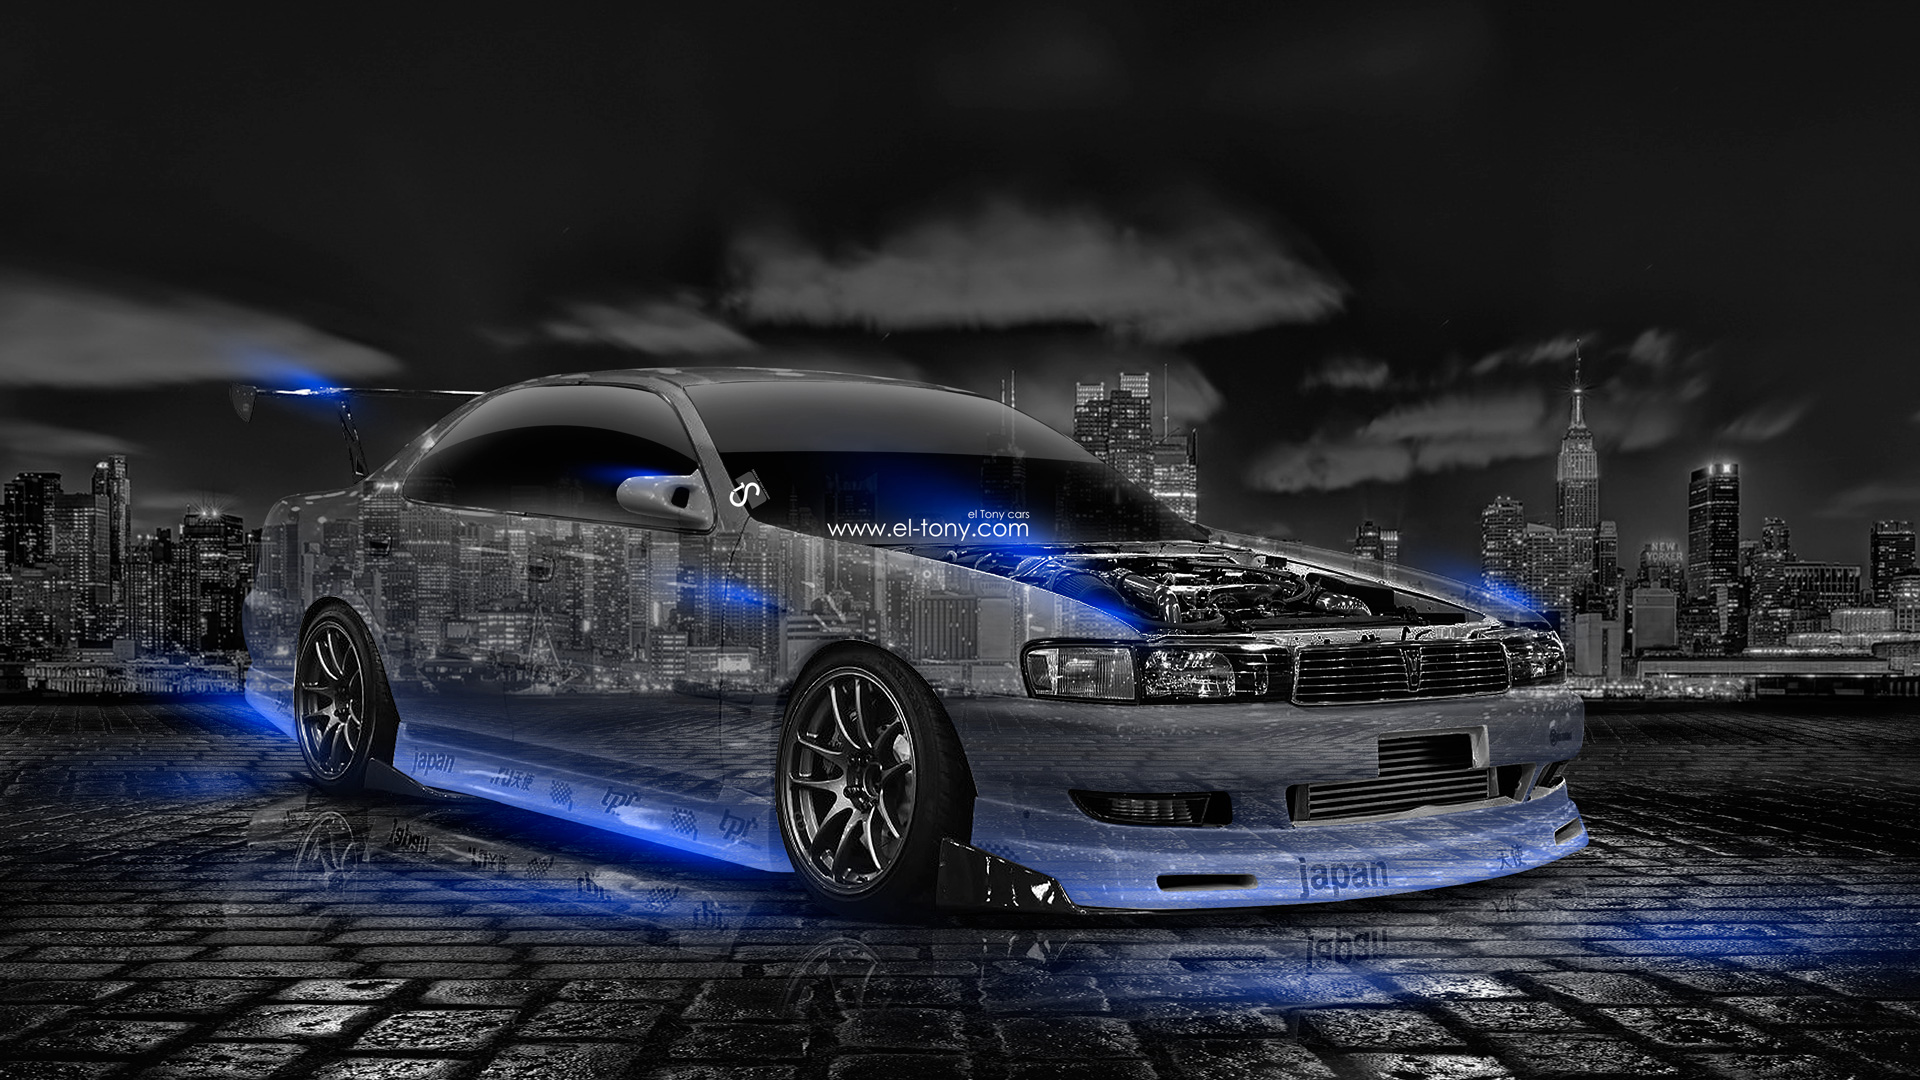 Toyota Chaser JZX90 JDM Tuning Crystal City Car